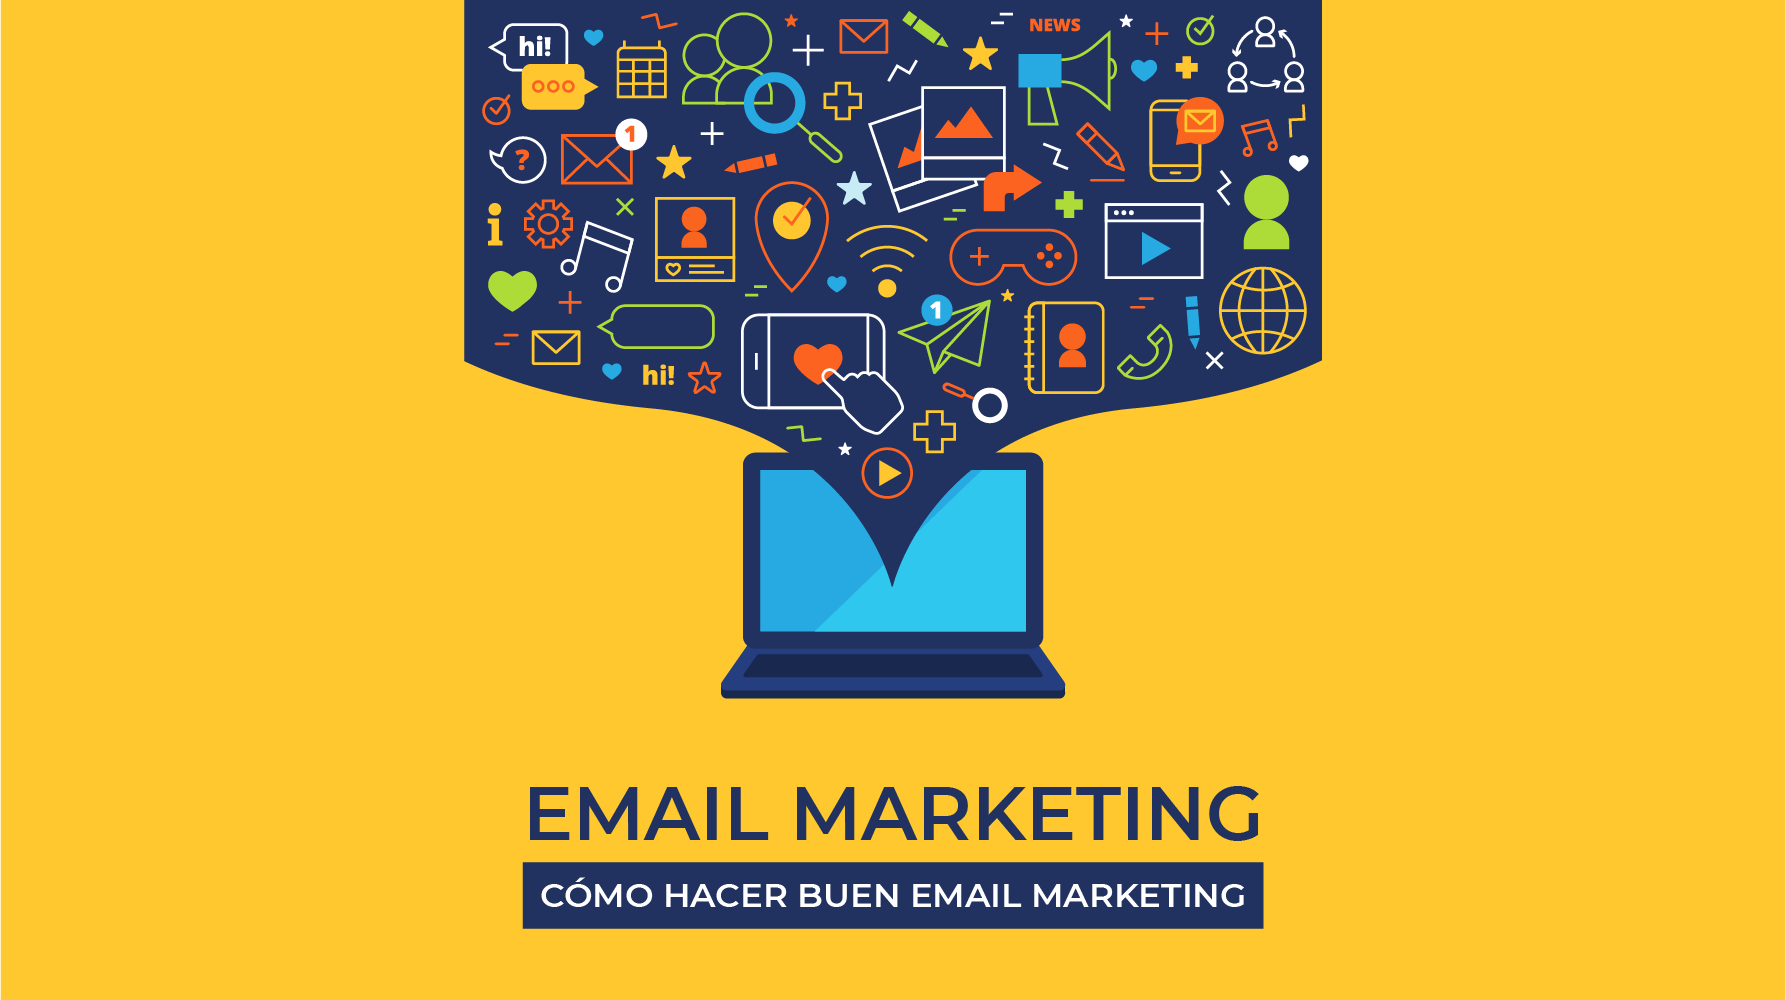 como hacer buen email marketing